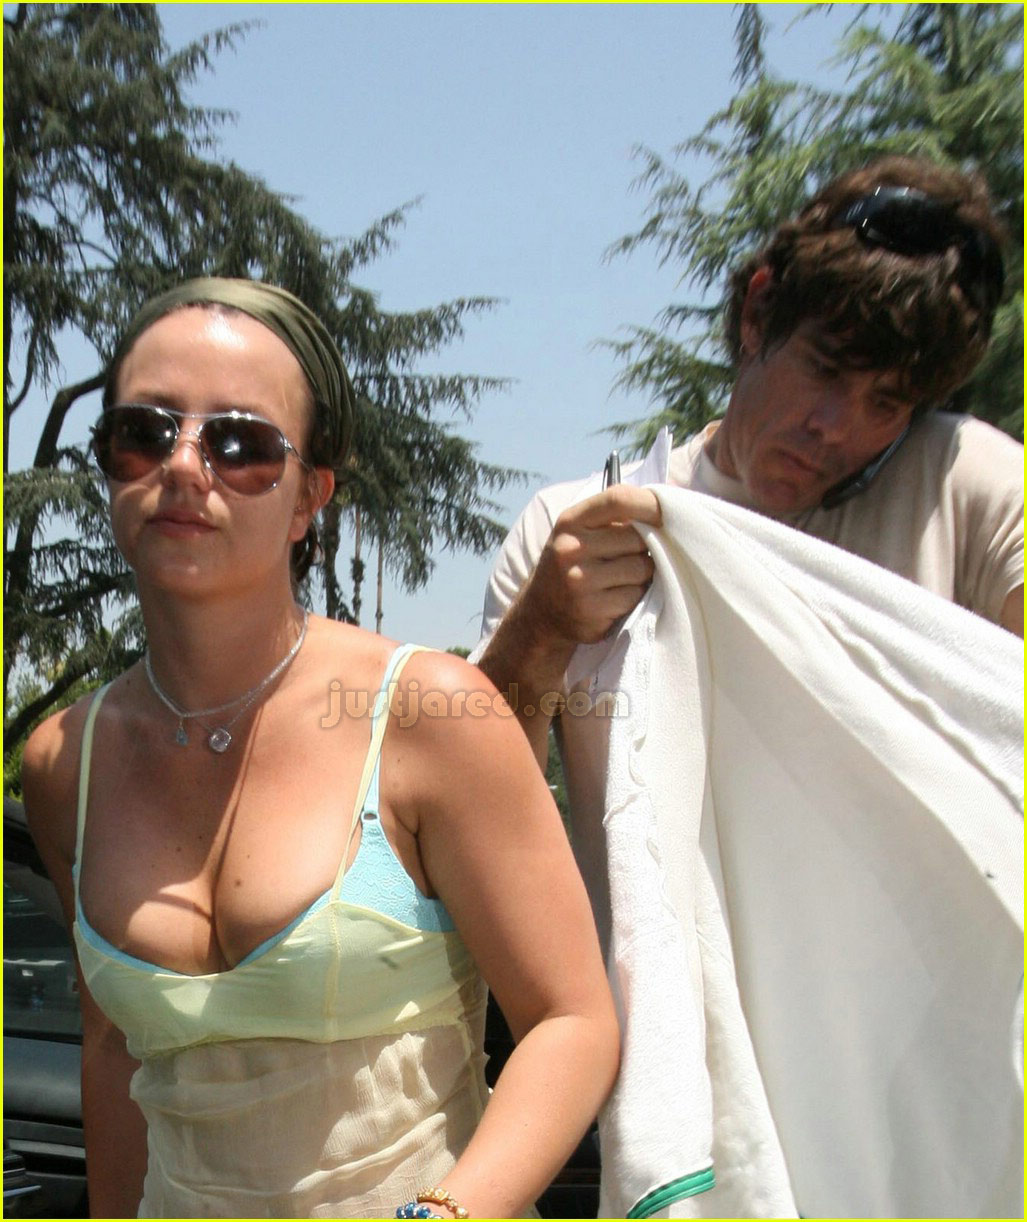 britney spears busting out of bra 04513091